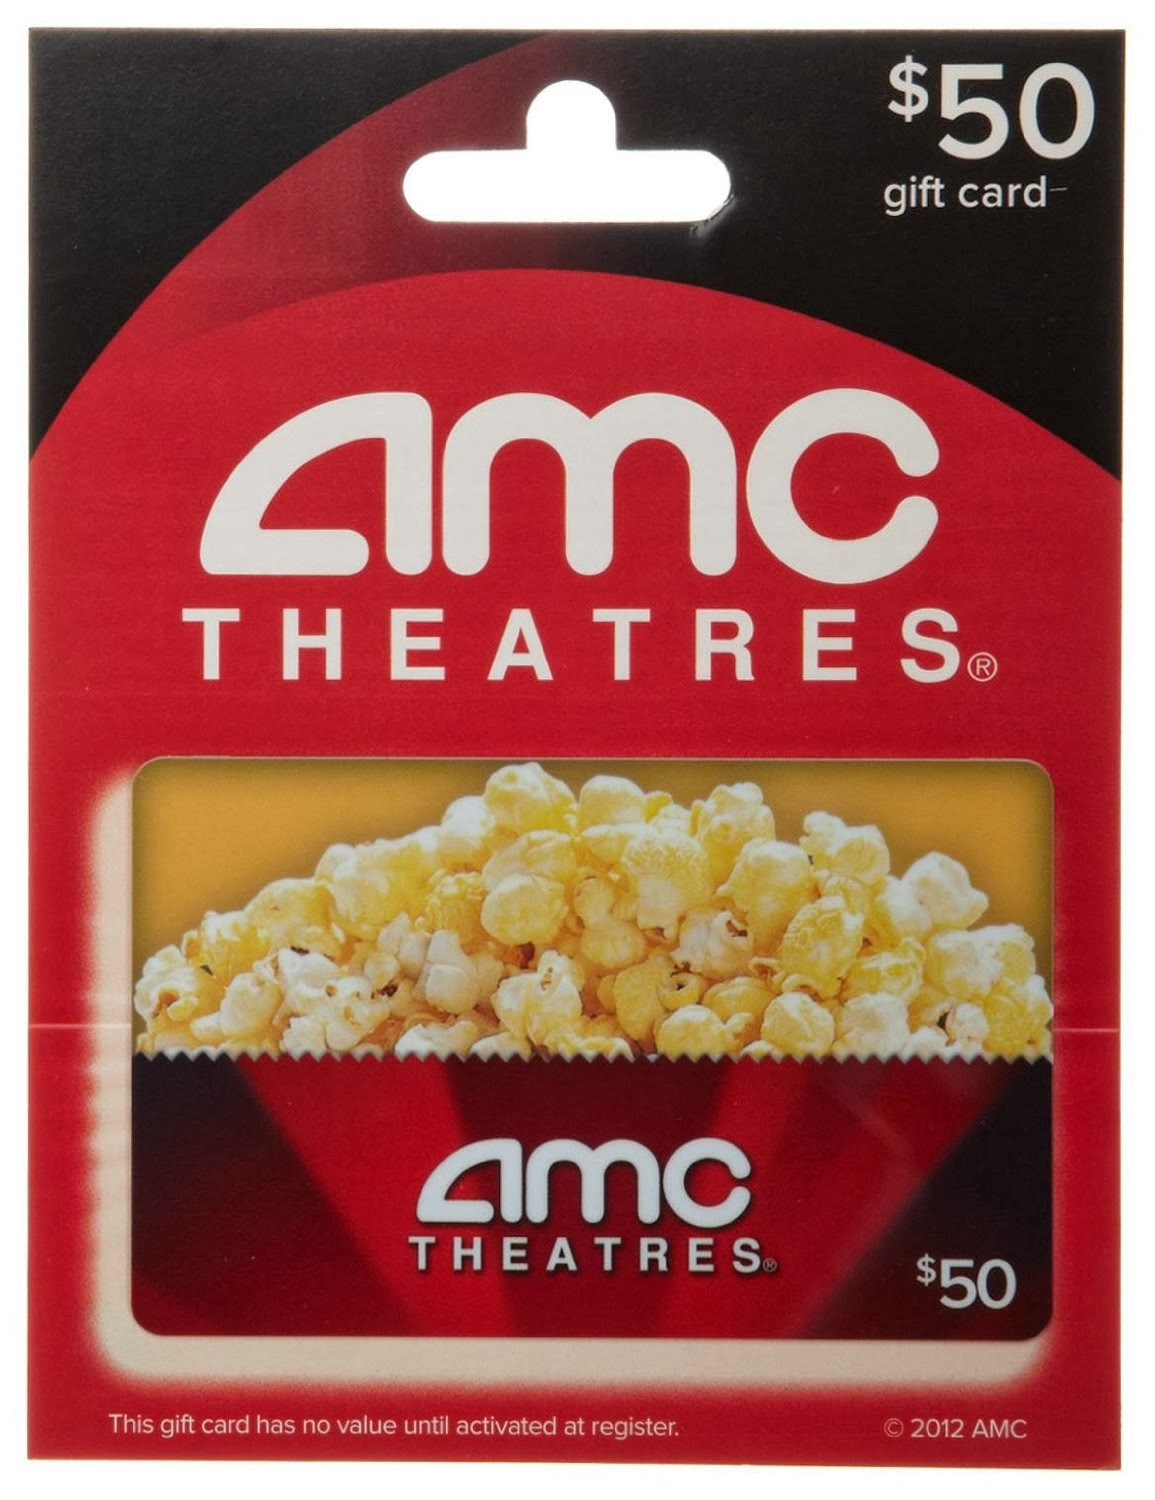 Check your AMC Theatres Gift Card Balance. AMC Theaters knows blockbusters. For the family, for friends, for lovers, make tonight an AMC Theaters night. Check your AMC Theaters gift card balance before heading to the movie, below. And sell any unwanted AMC .